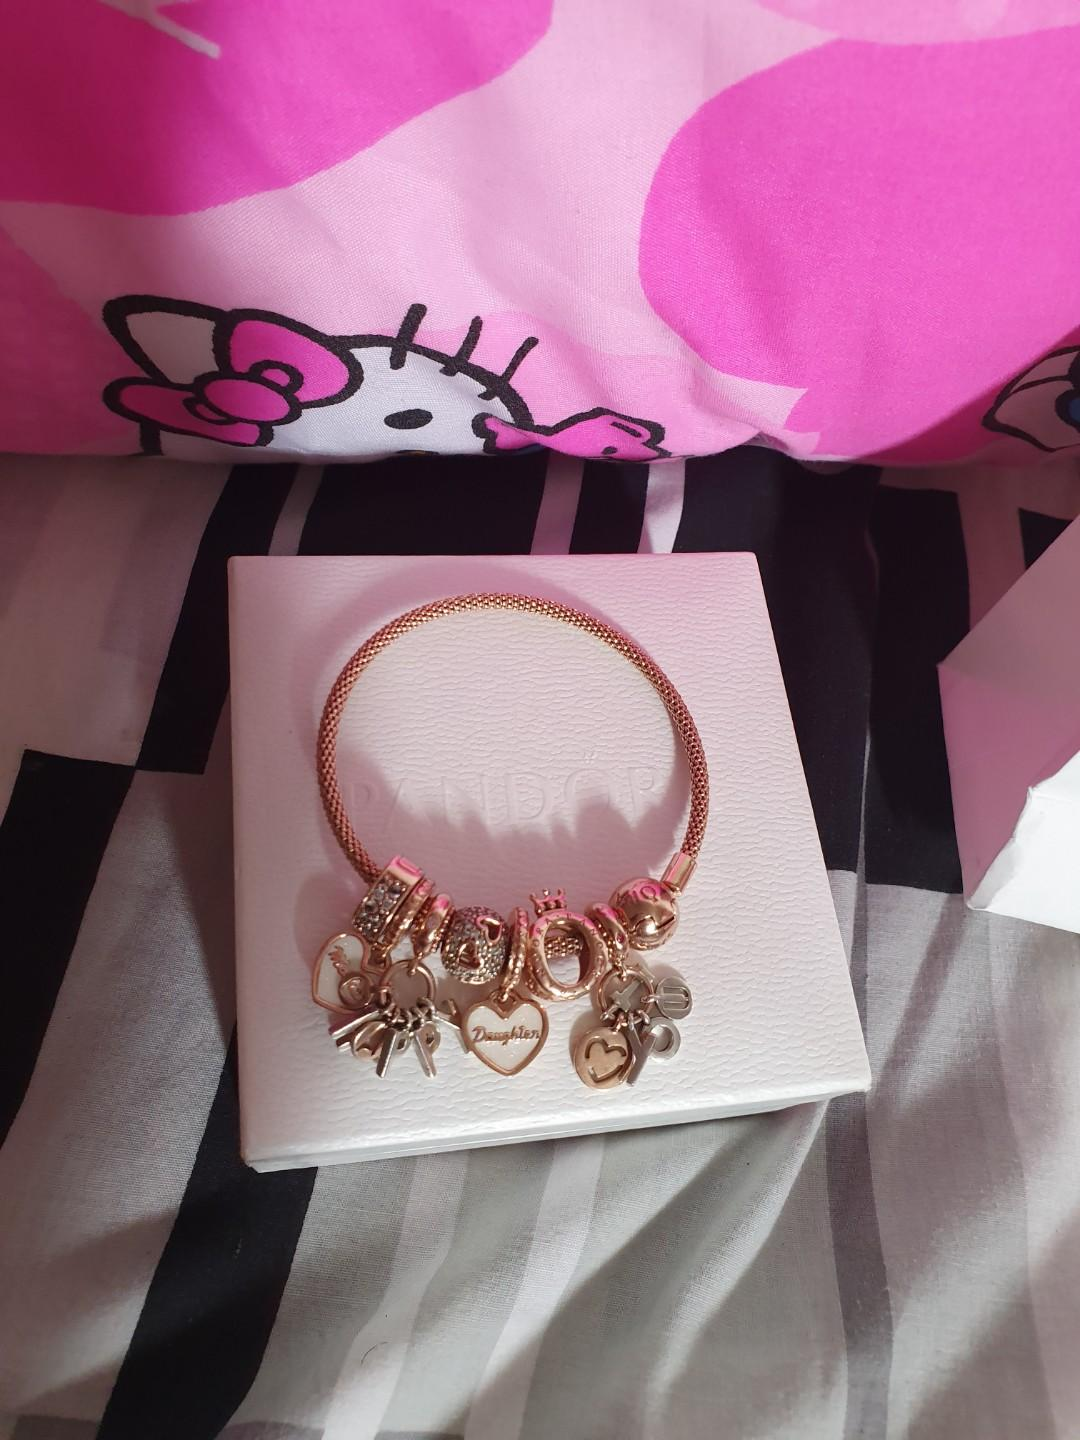 Pandora rose gold bracelet and charms